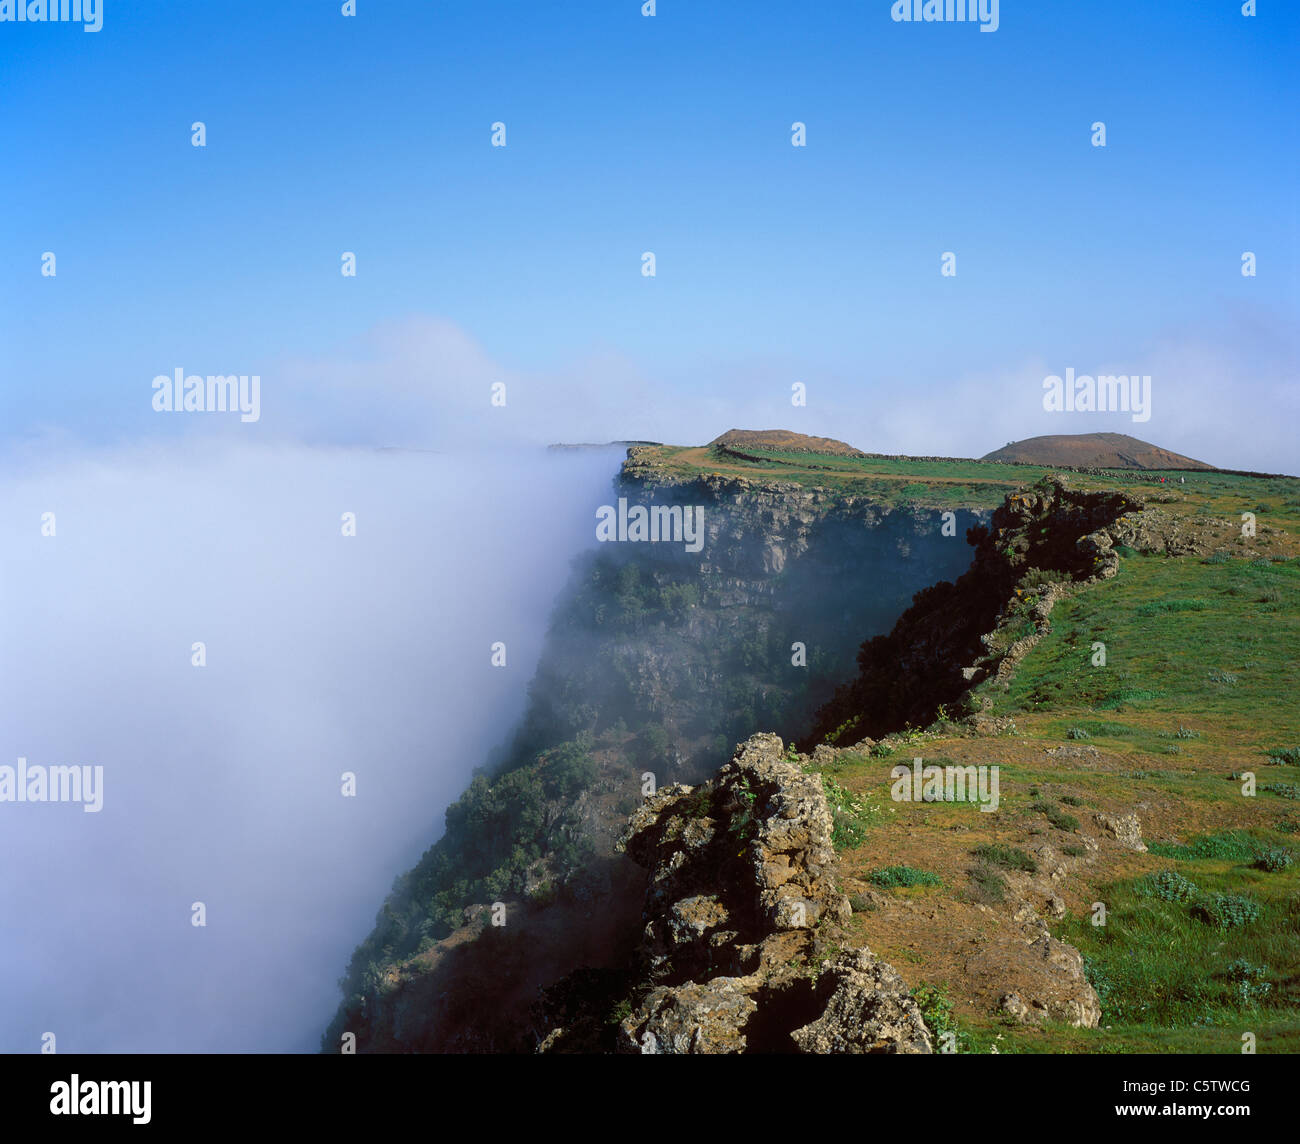 Spain, Canary Islands, El Hierro, View of clouds over mountain Stock Photo